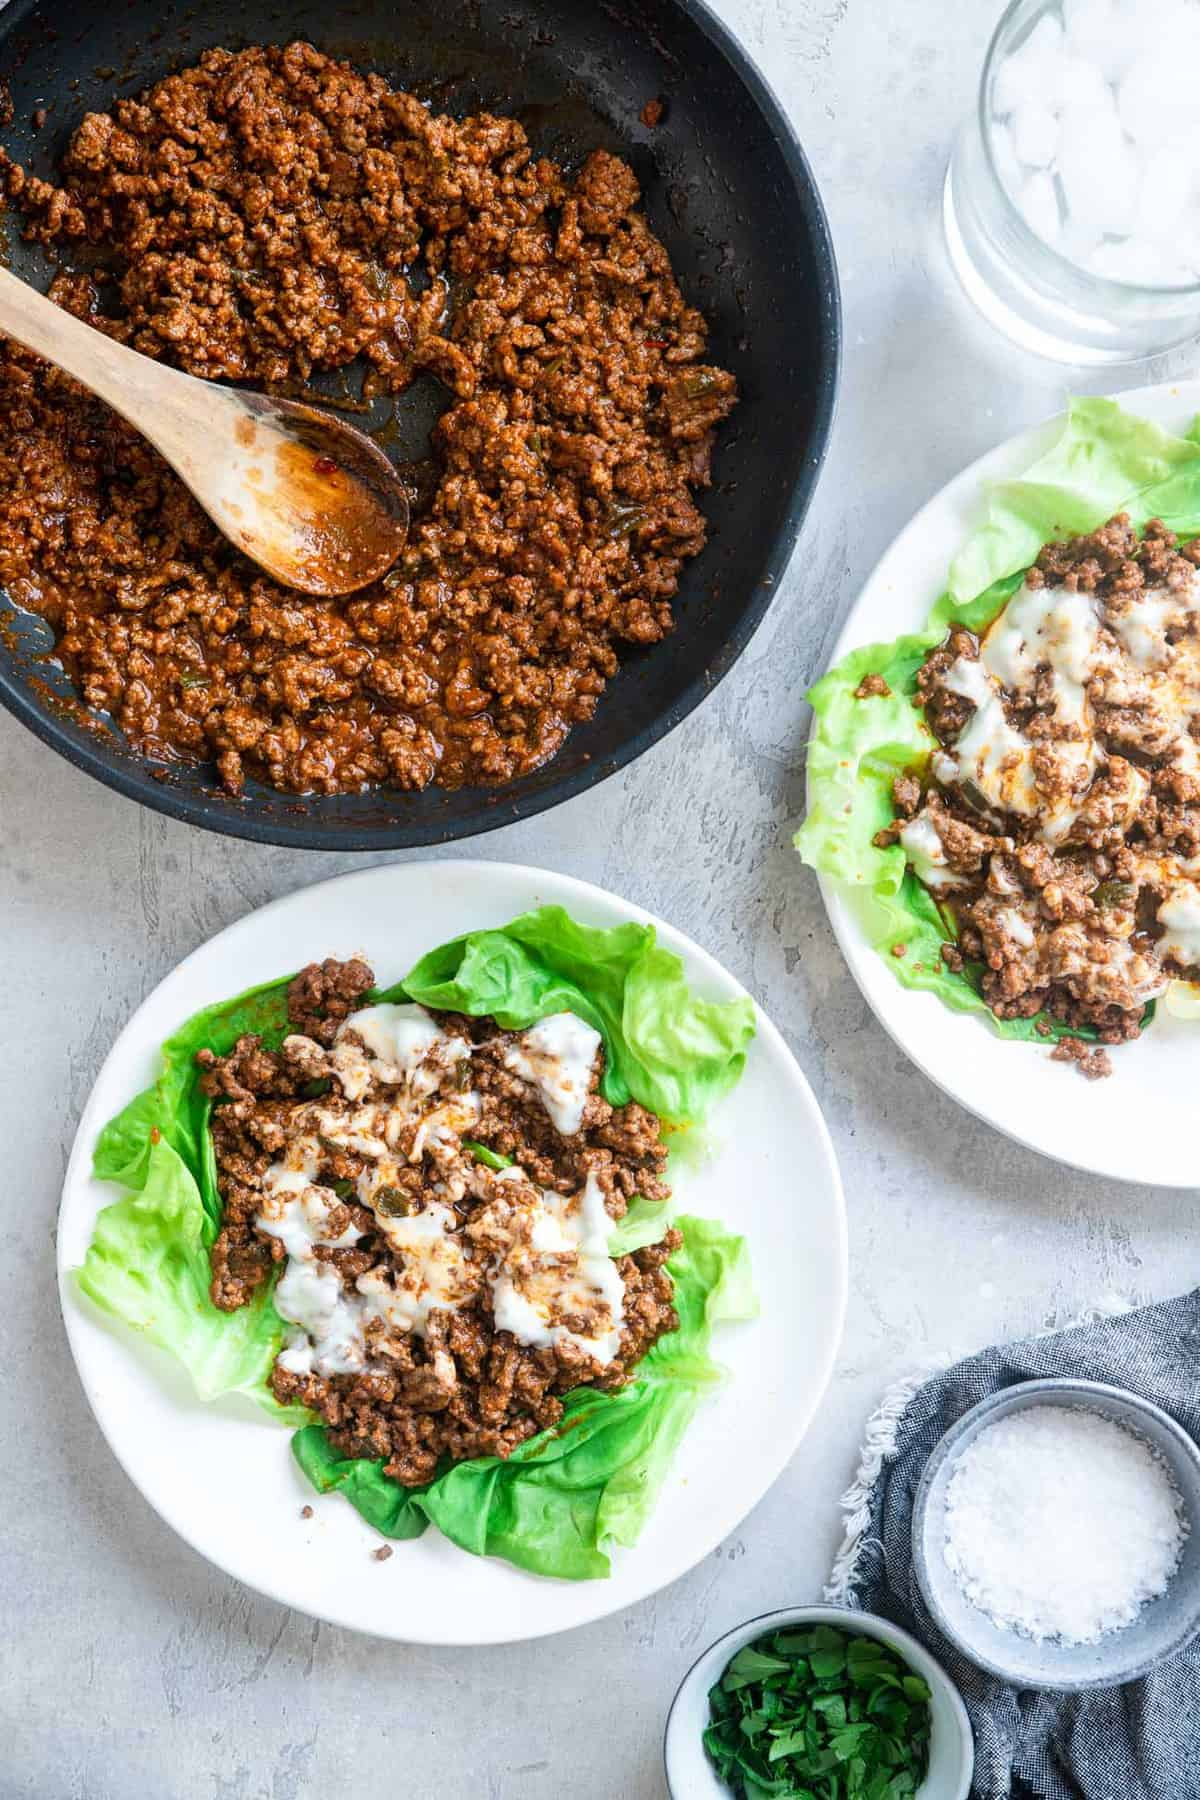 Overhead photo of Low Carb Keto sloppy joes on a table